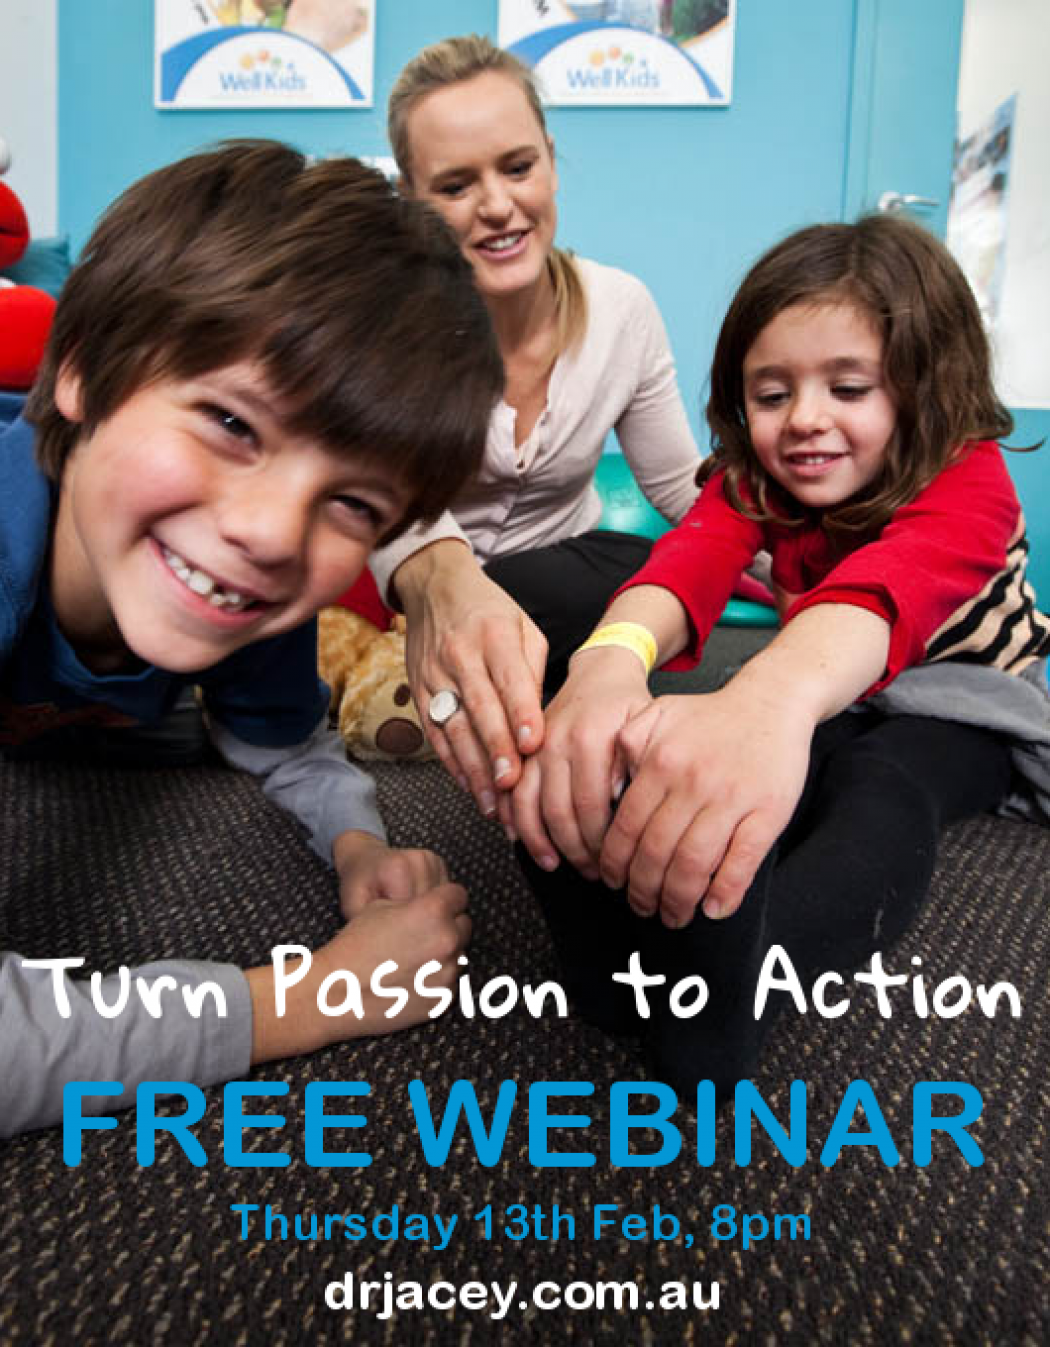 Free Webinar – 13th Feb: Introducing Long-Term Care to Families